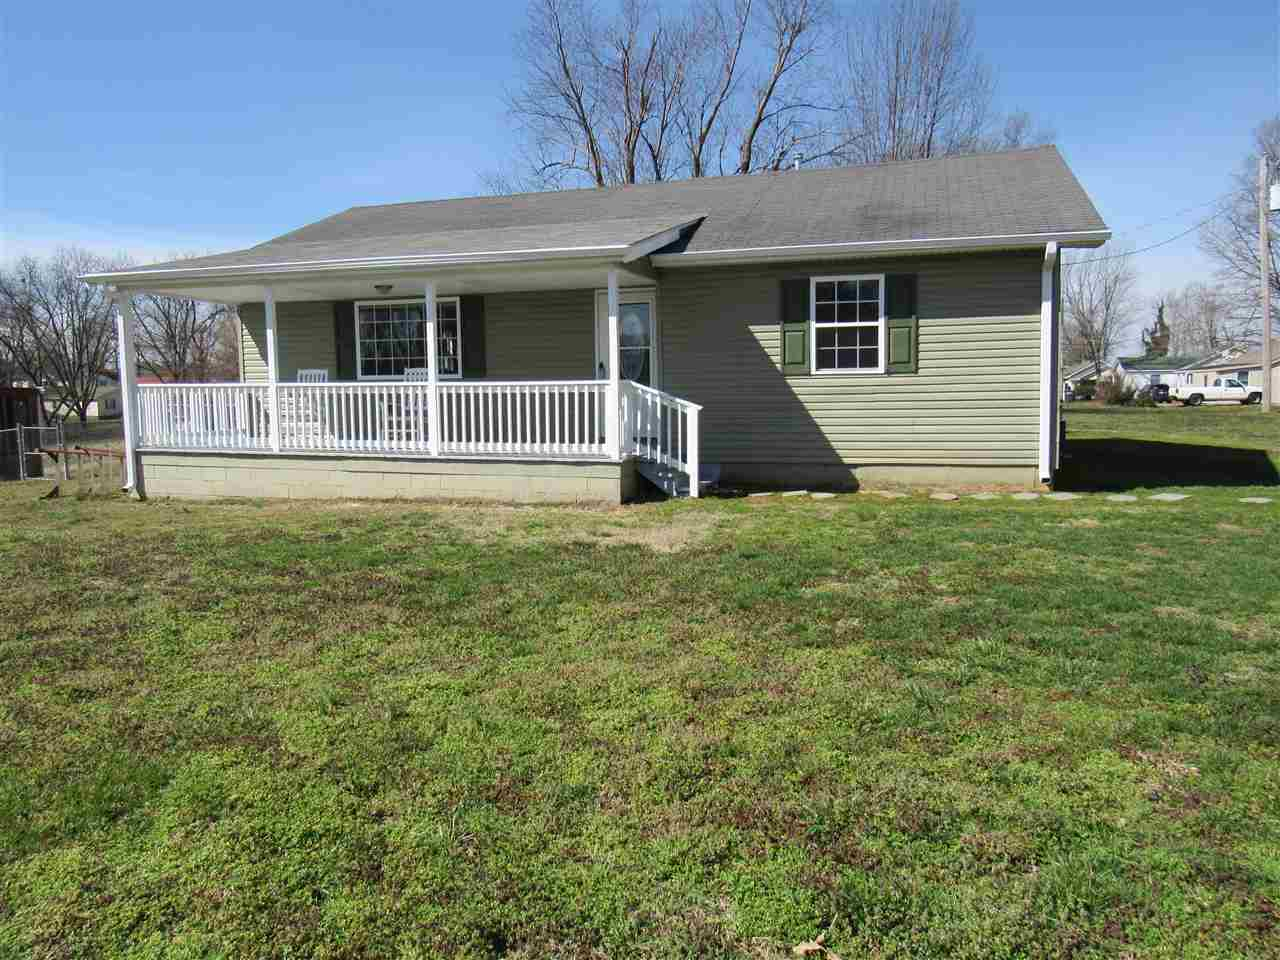 121 East Dr,Newbern,Tennessee 38059,3 Bedrooms Bedrooms,2 BathroomsBathrooms,Residential,121 East Dr,186585